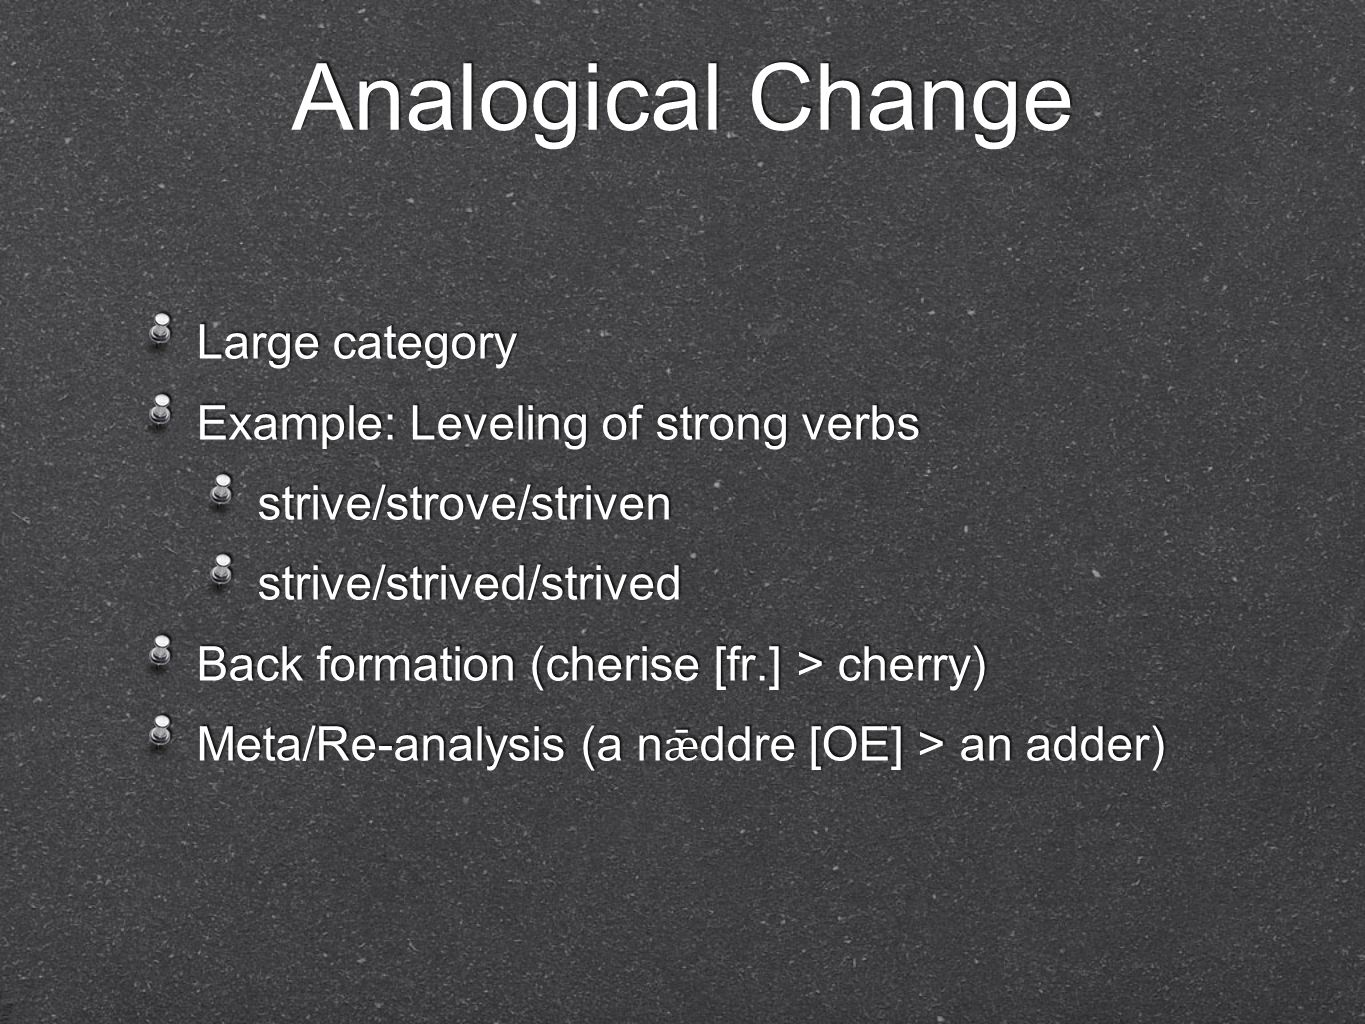 Analogical Change Large category Example: Leveling of strong verbs strive/strove/striven strive/strived/strived Back formation (cherise [fr.] > cherry) Meta/Re-analysis (a n ǣ ddre [OE] > an adder) Large category Example: Leveling of strong verbs strive/strove/striven strive/strived/strived Back formation (cherise [fr.] > cherry) Meta/Re-analysis (a n ǣ ddre [OE] > an adder)